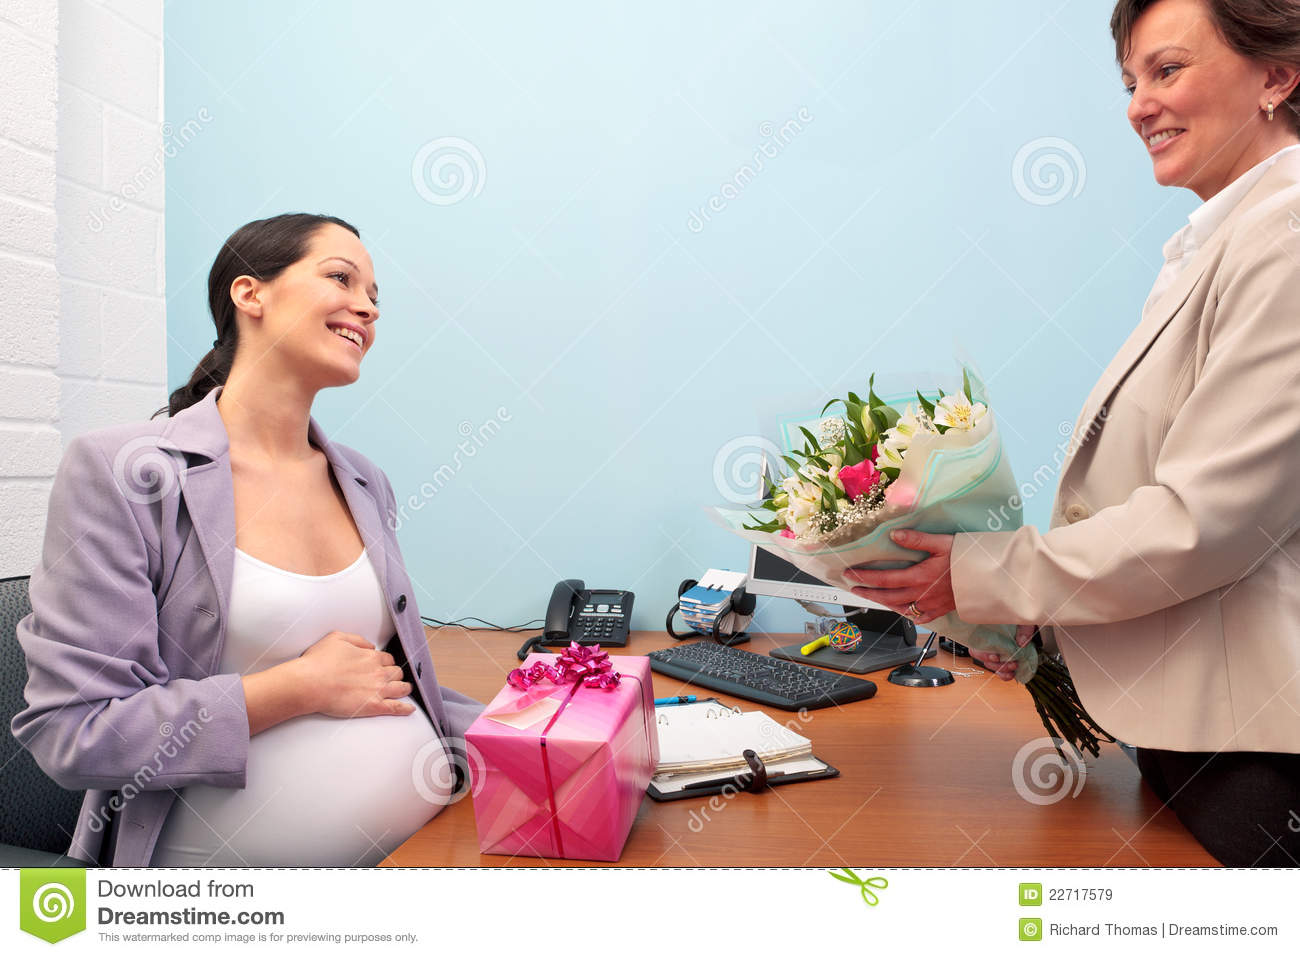 Pregnant office worker going on maternity leave.